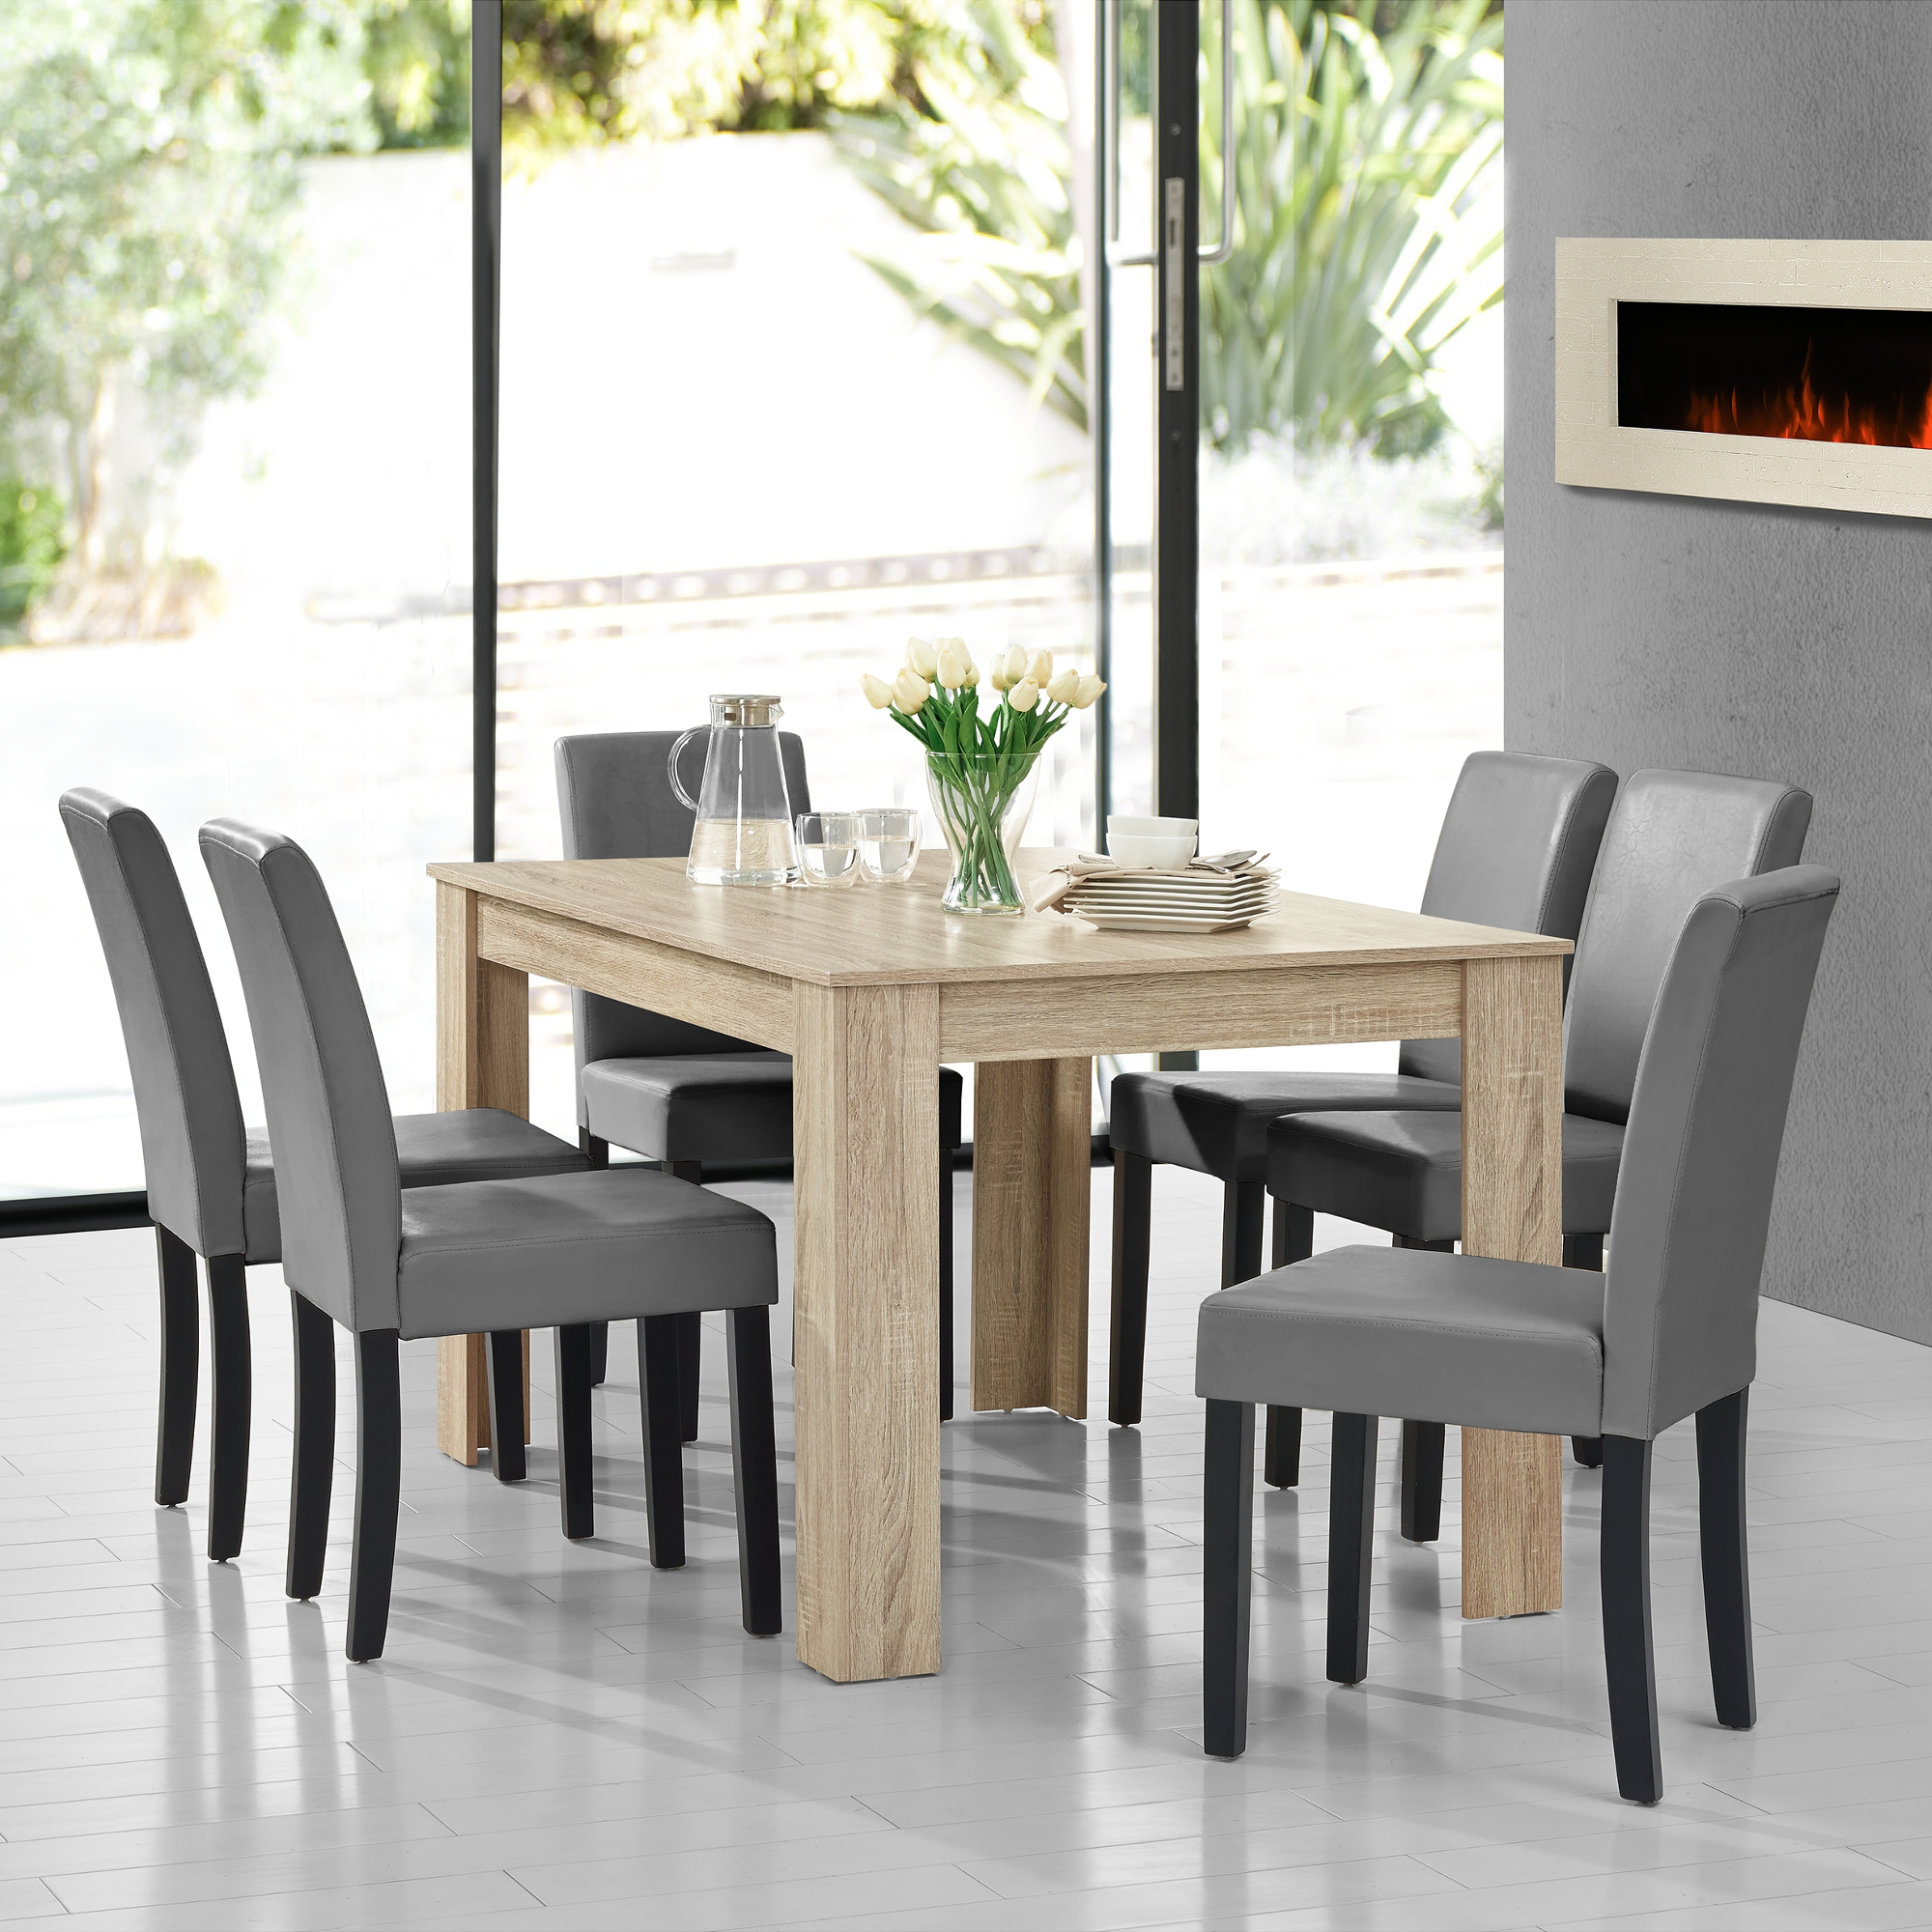 Dining table limed oak with 6 chairs light grey 140x90 table chairs ebay - Limed oak dining tables ...